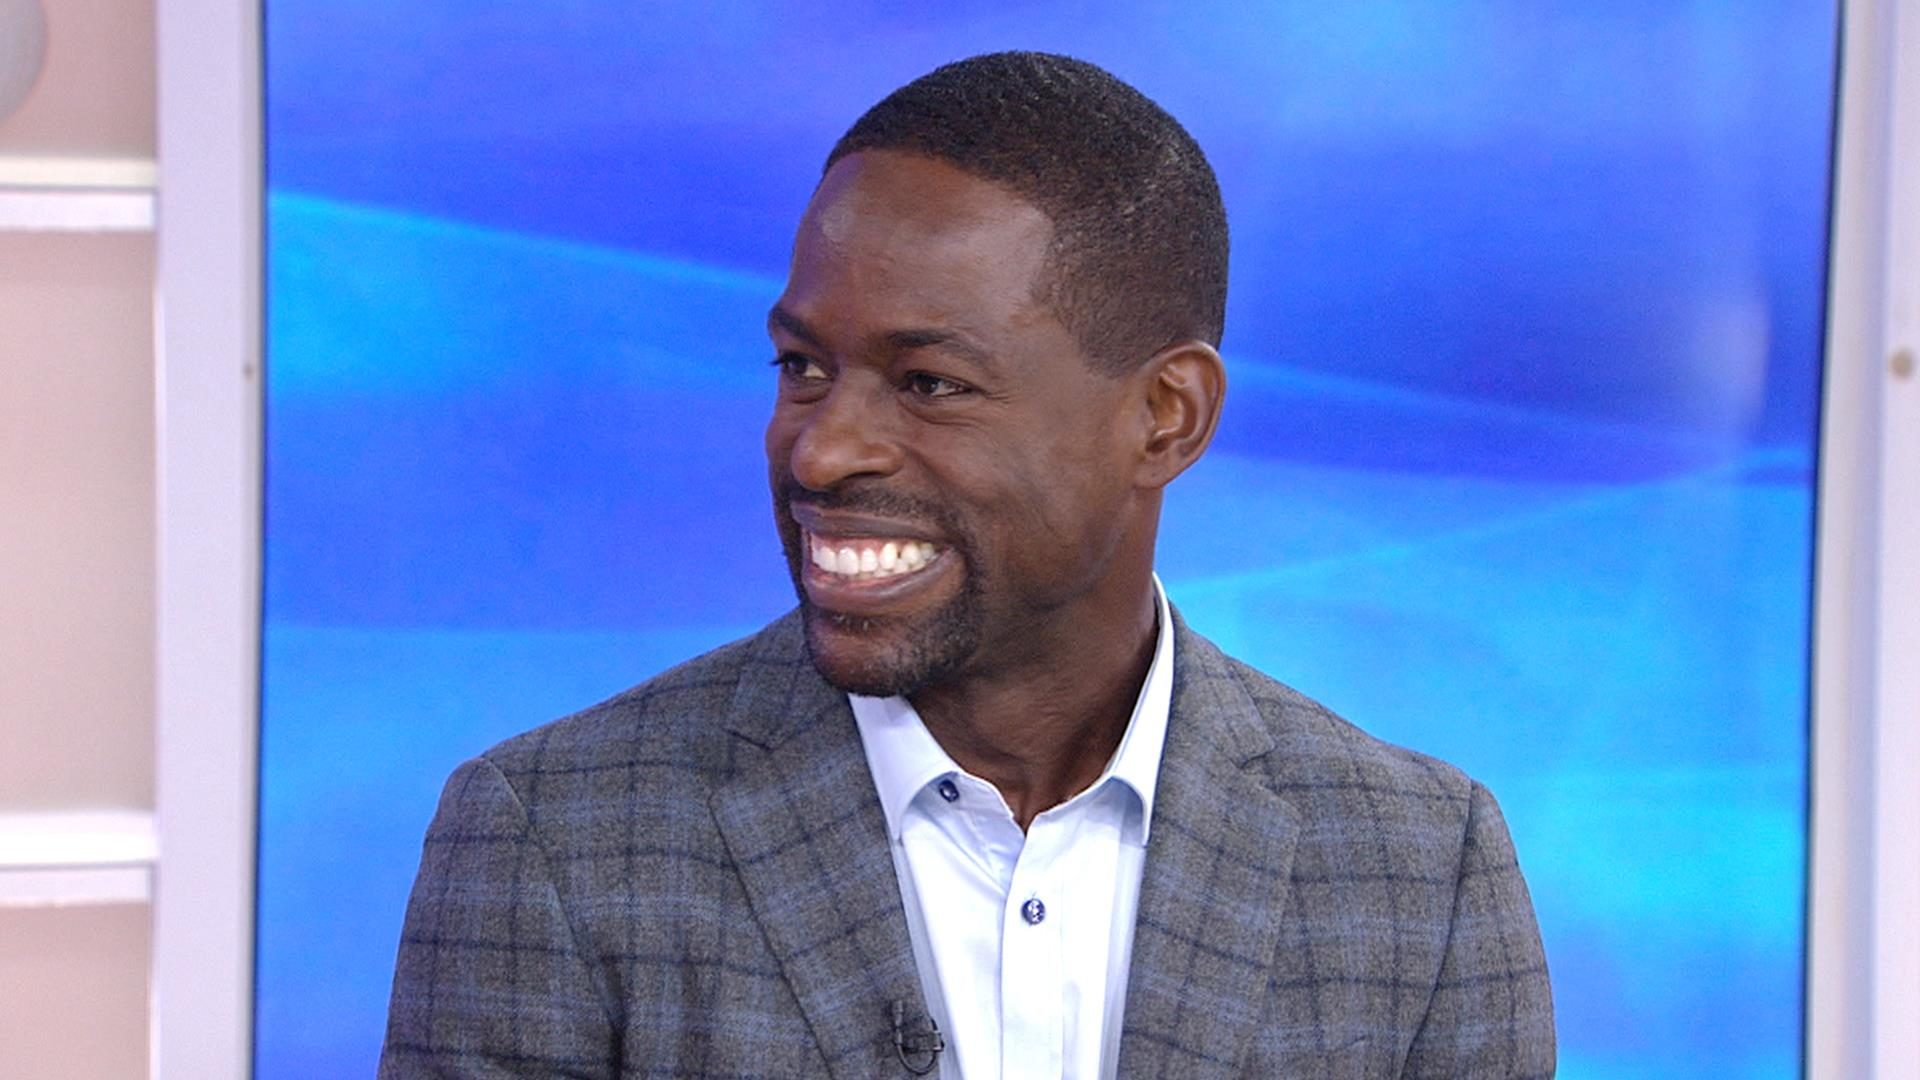 Sterling K. Brown: \'This Is Us\' season premiere has \'big clue\' about ...